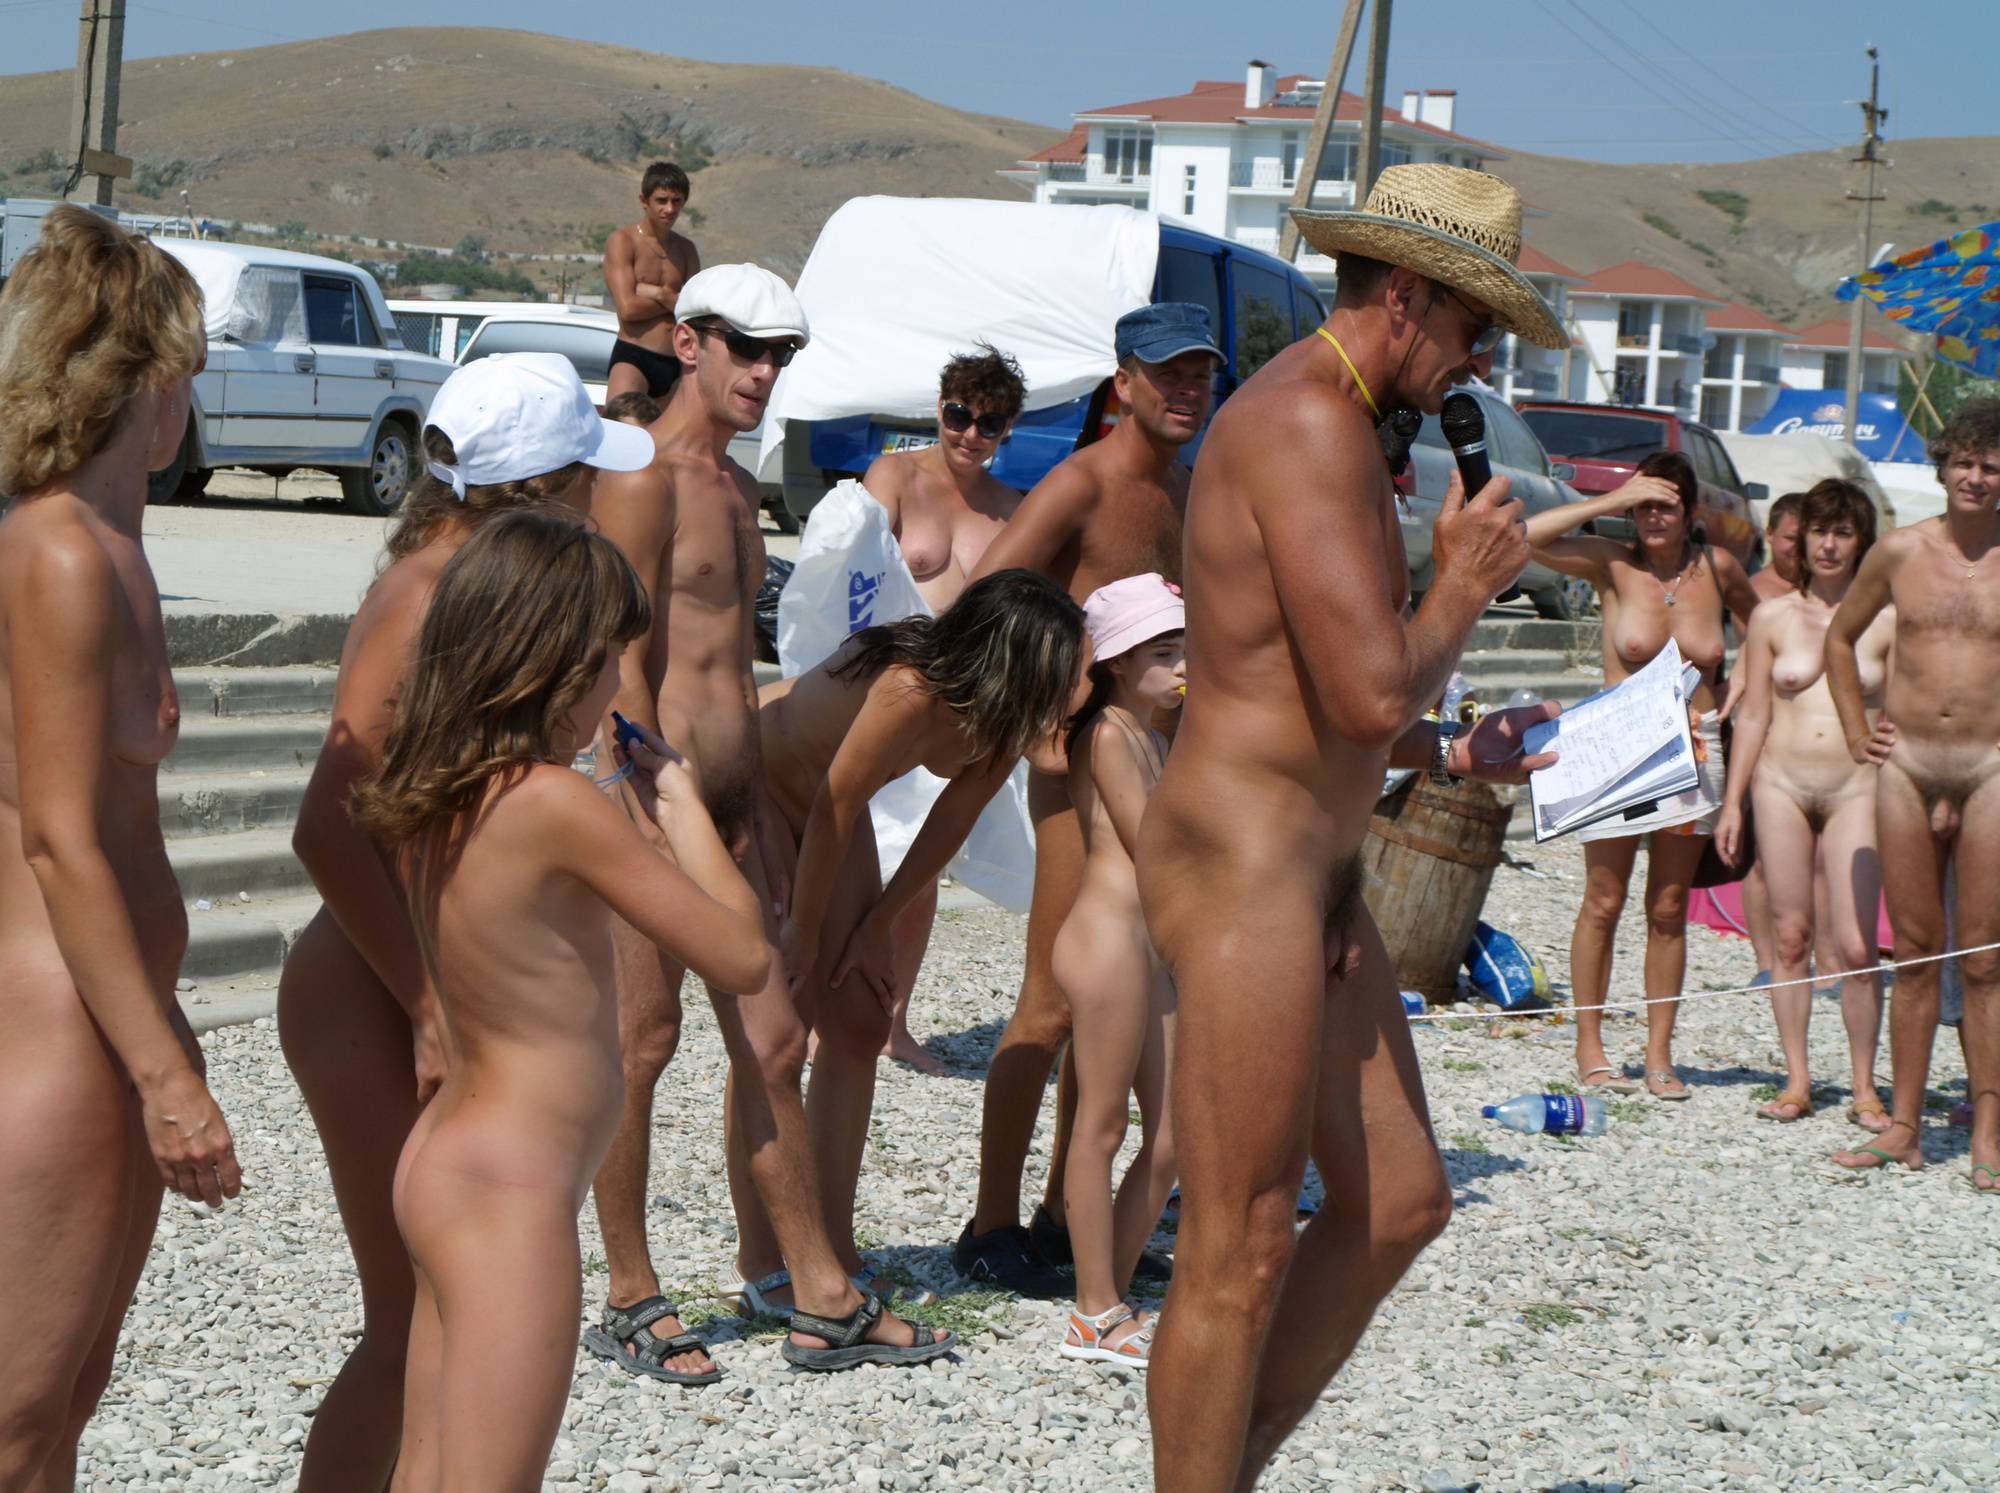 Purenudism Images Naturist Whistle-Blower - 2